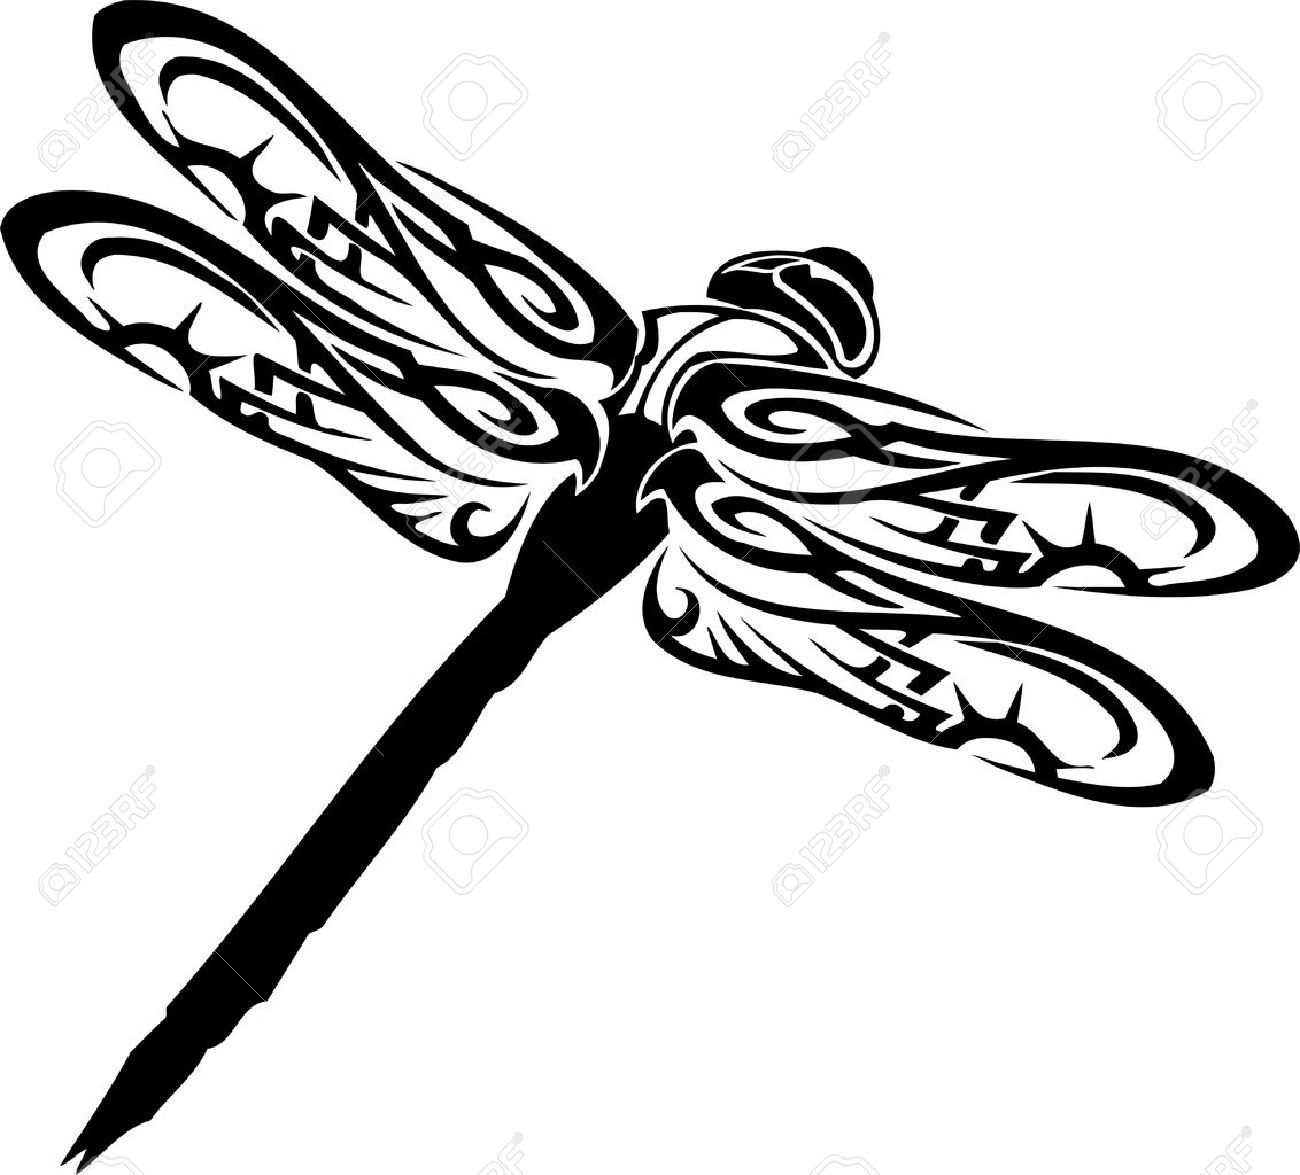 Black And White Dragonfly Silhouette Clipart Free